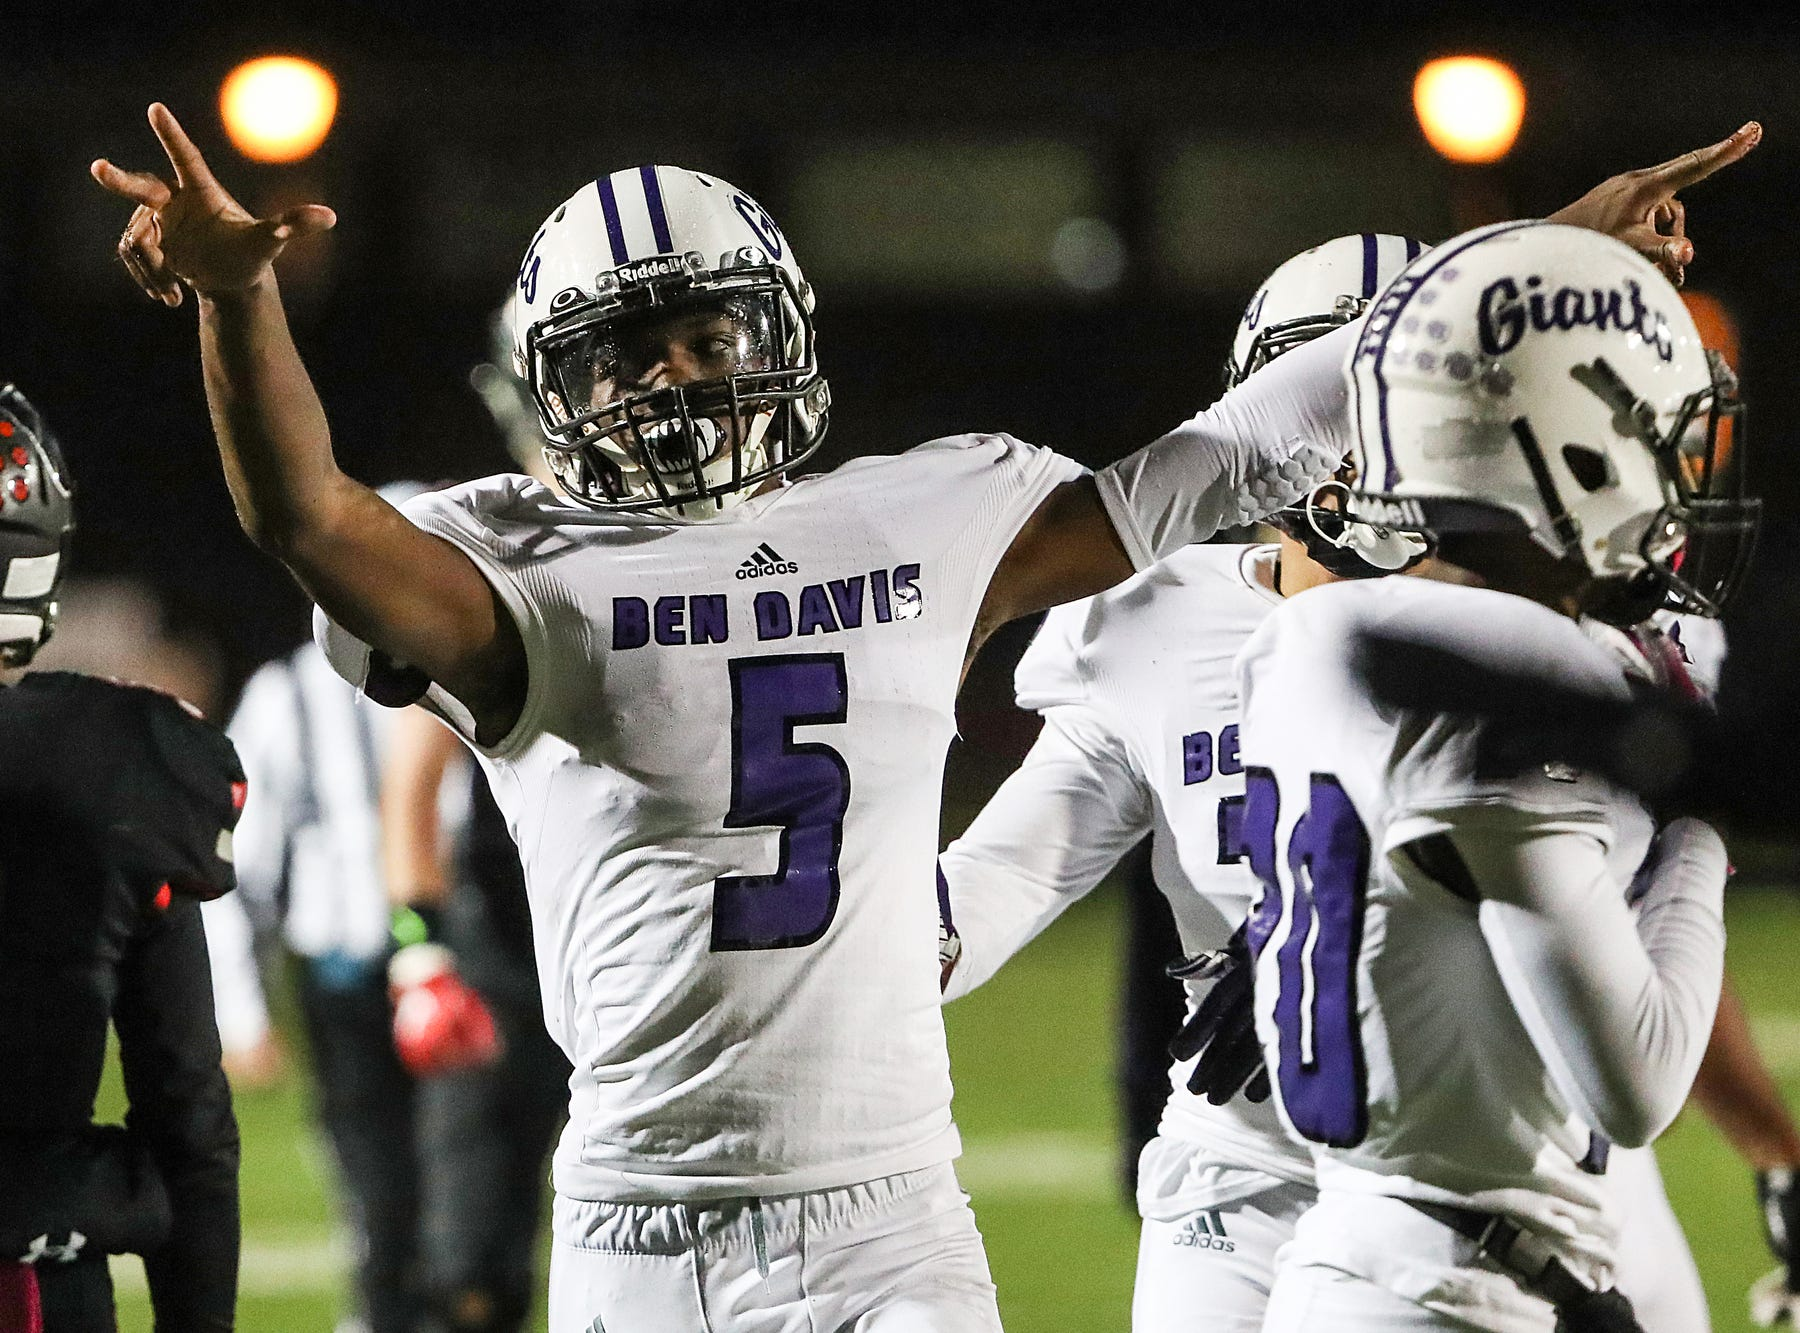 Ben Davis Giants Arrion Dodds (5) celebrates after blocking a pass meant for North Central Panthers Tre'von Elliott (9) in the second half of the game at North Central High School in Indianapolis, Oct. 12, 2018. North Central won, 38-23.